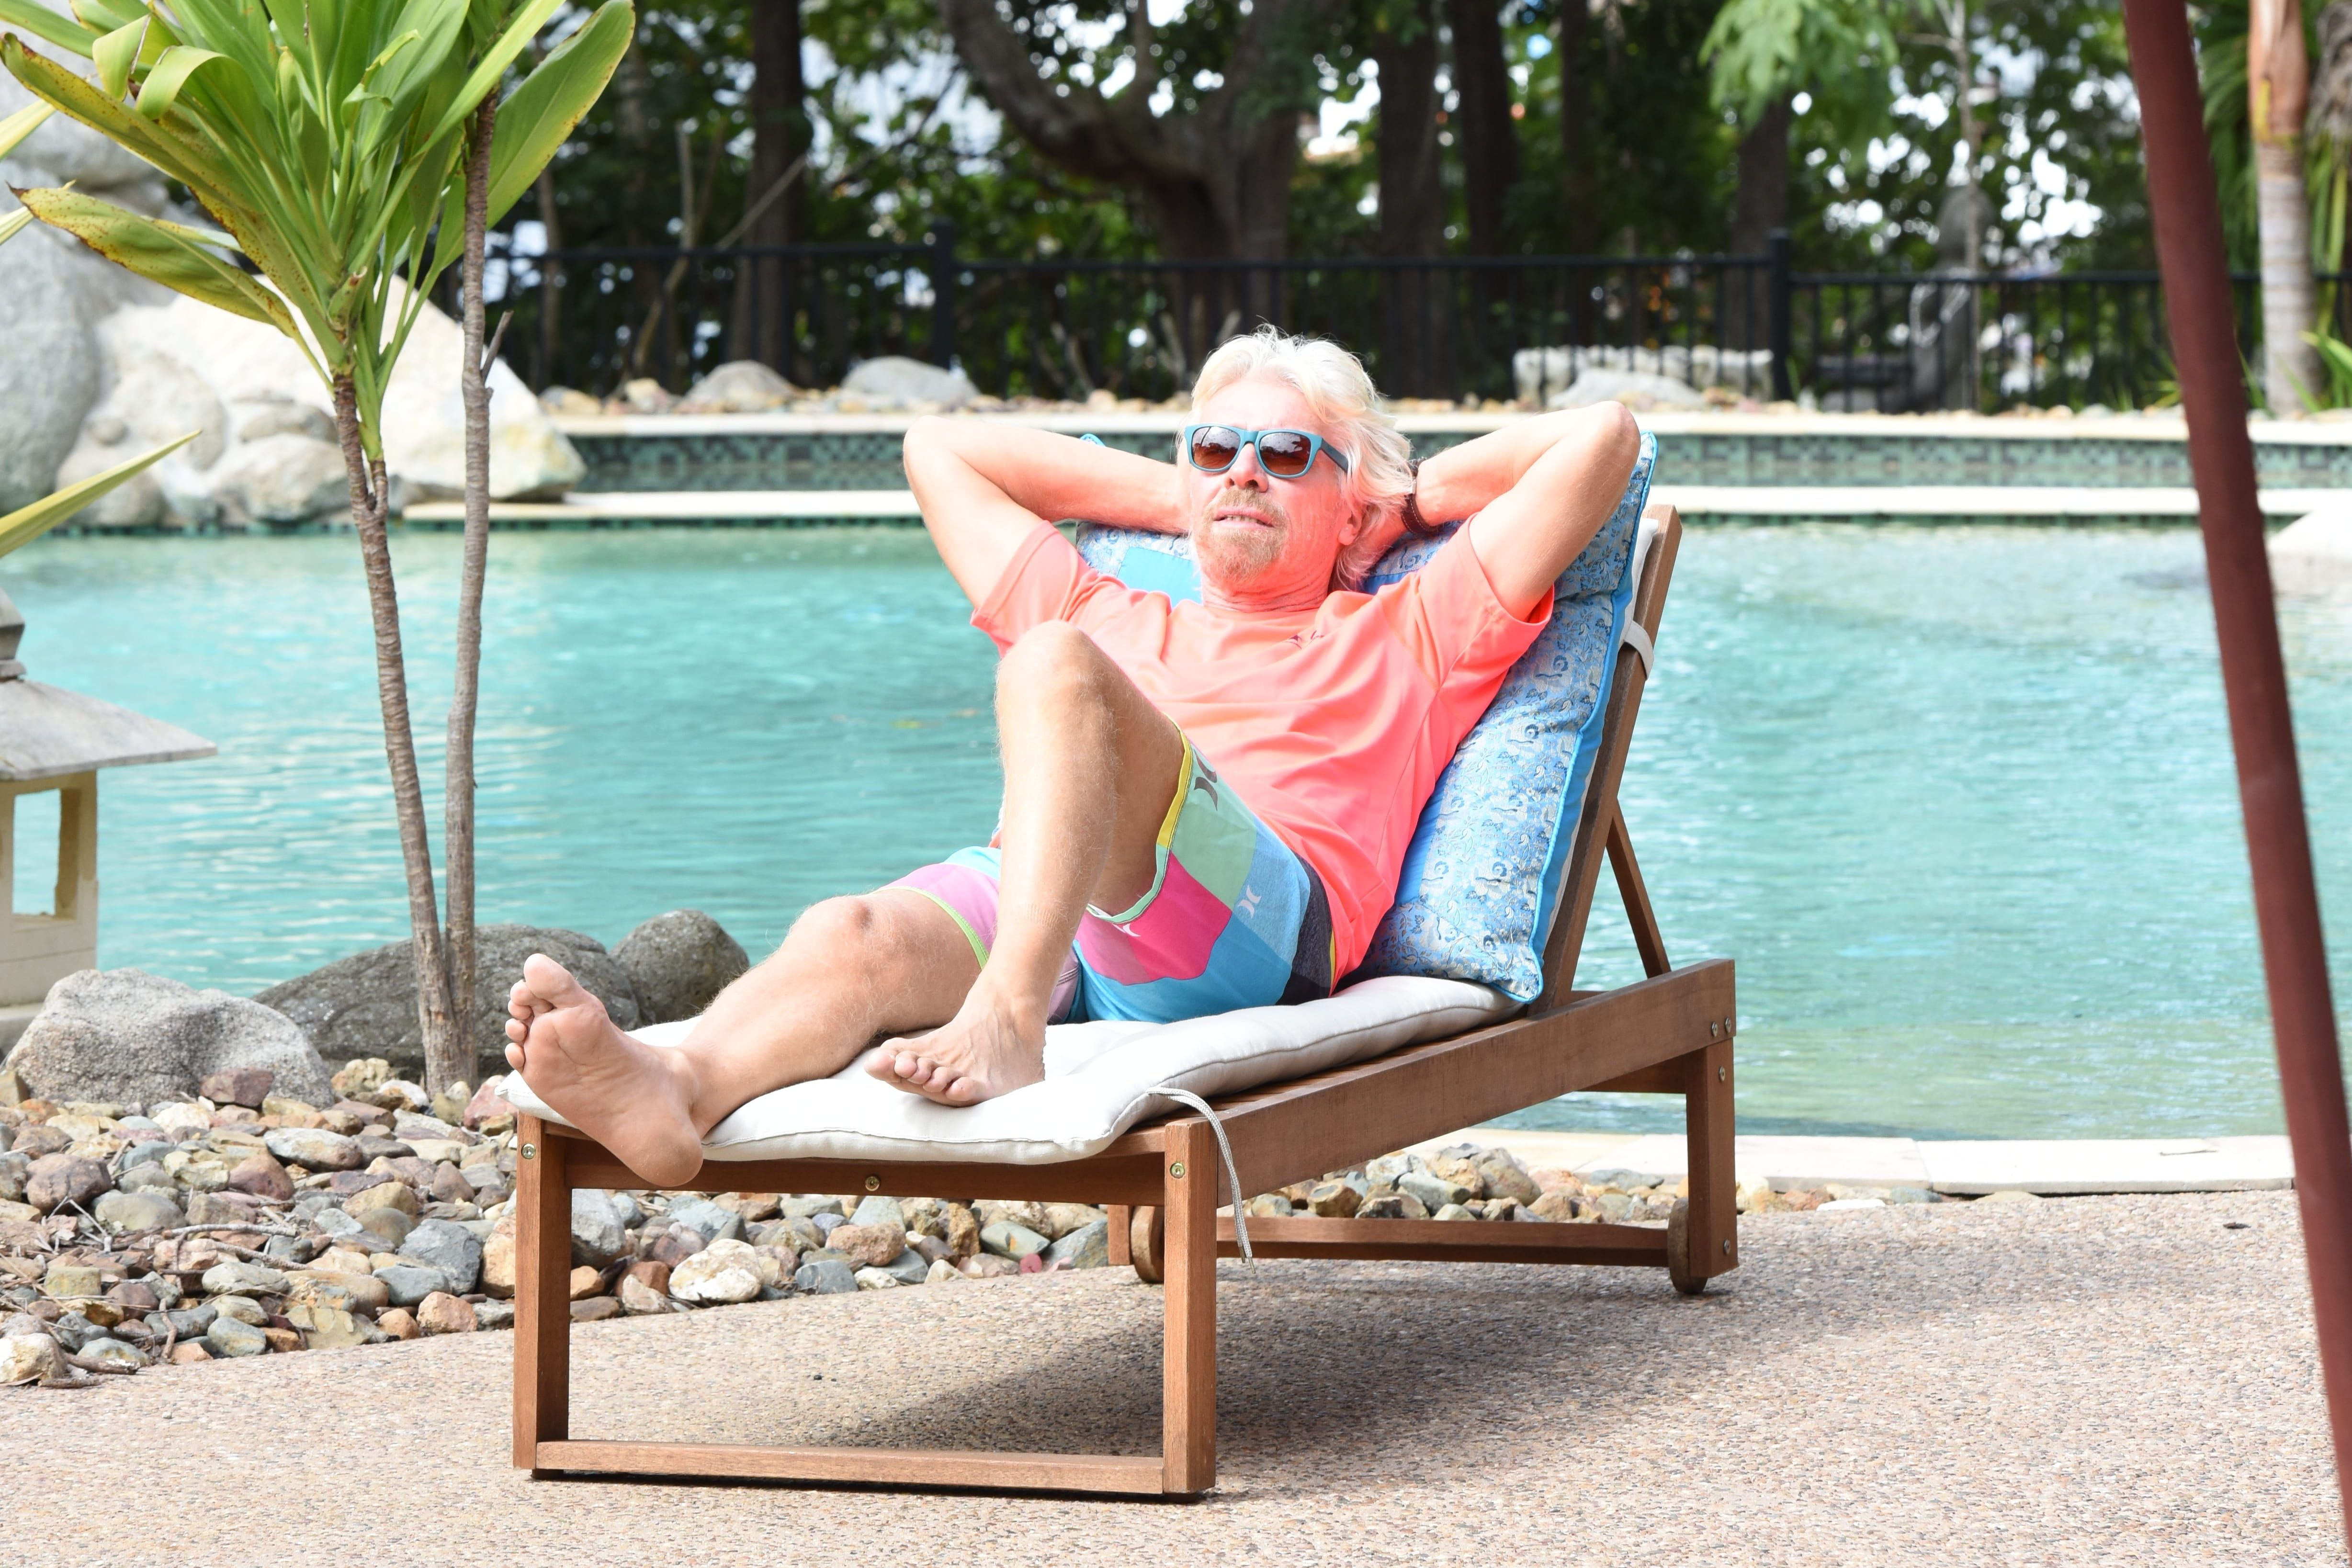 Richard Branson Is Opening His Caribbean Private Island to the Public This Summer